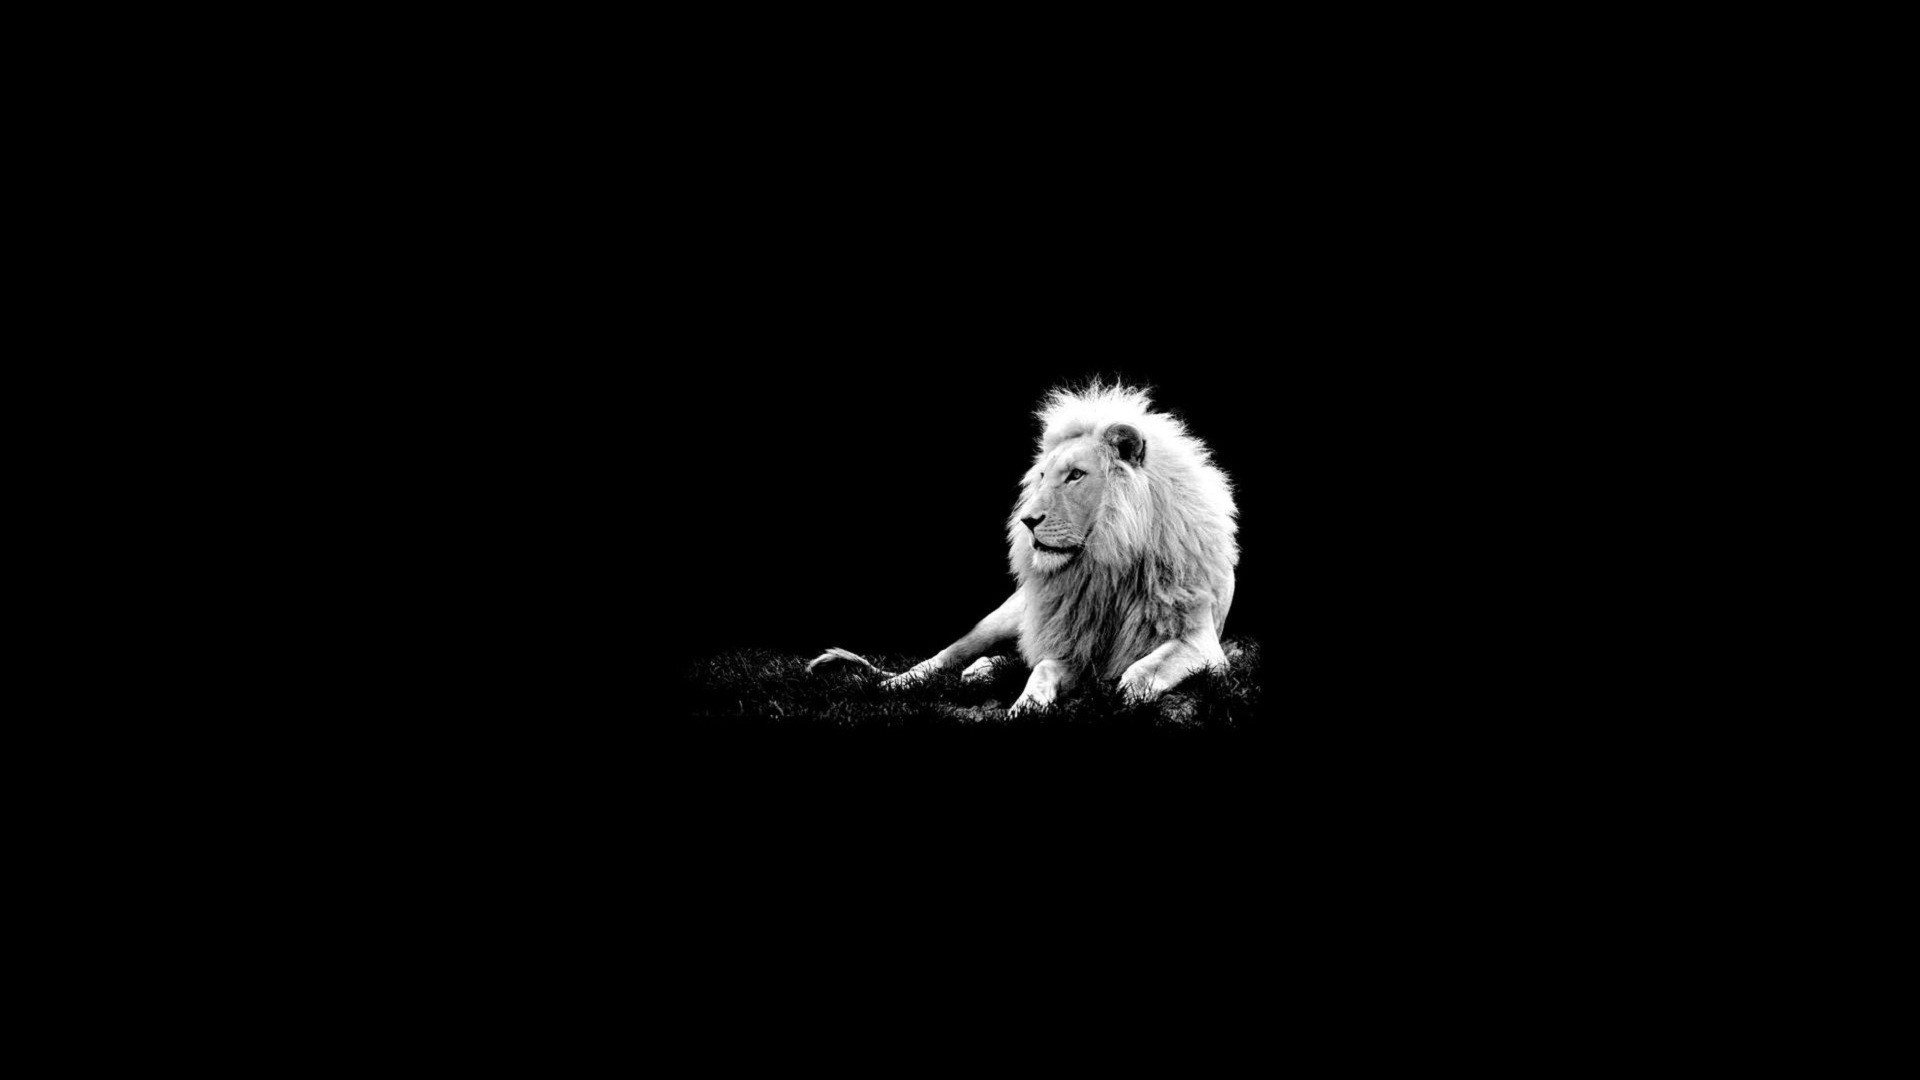 White Lion Desktop Wallpaper wallpaper wallpaper hd background 1920x1080